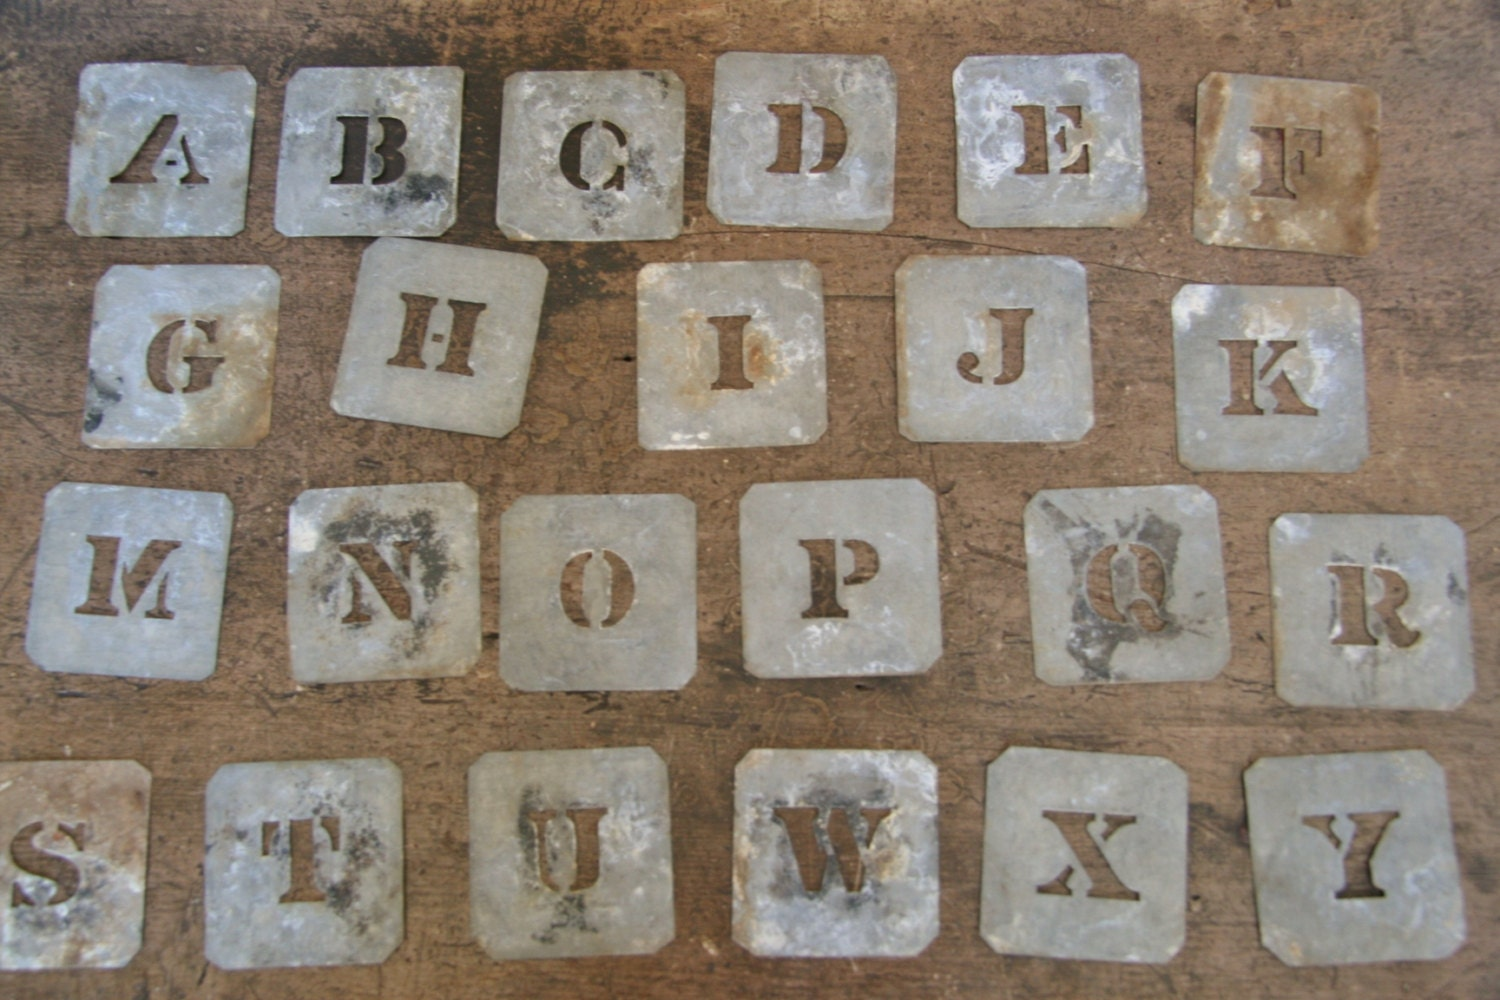 Vintage Metal Letter Stencils Wool Bale Zinc Alphabet Markers Rustic Industrial Decor Art Craft Monogram Price For ONE - FoundByHer